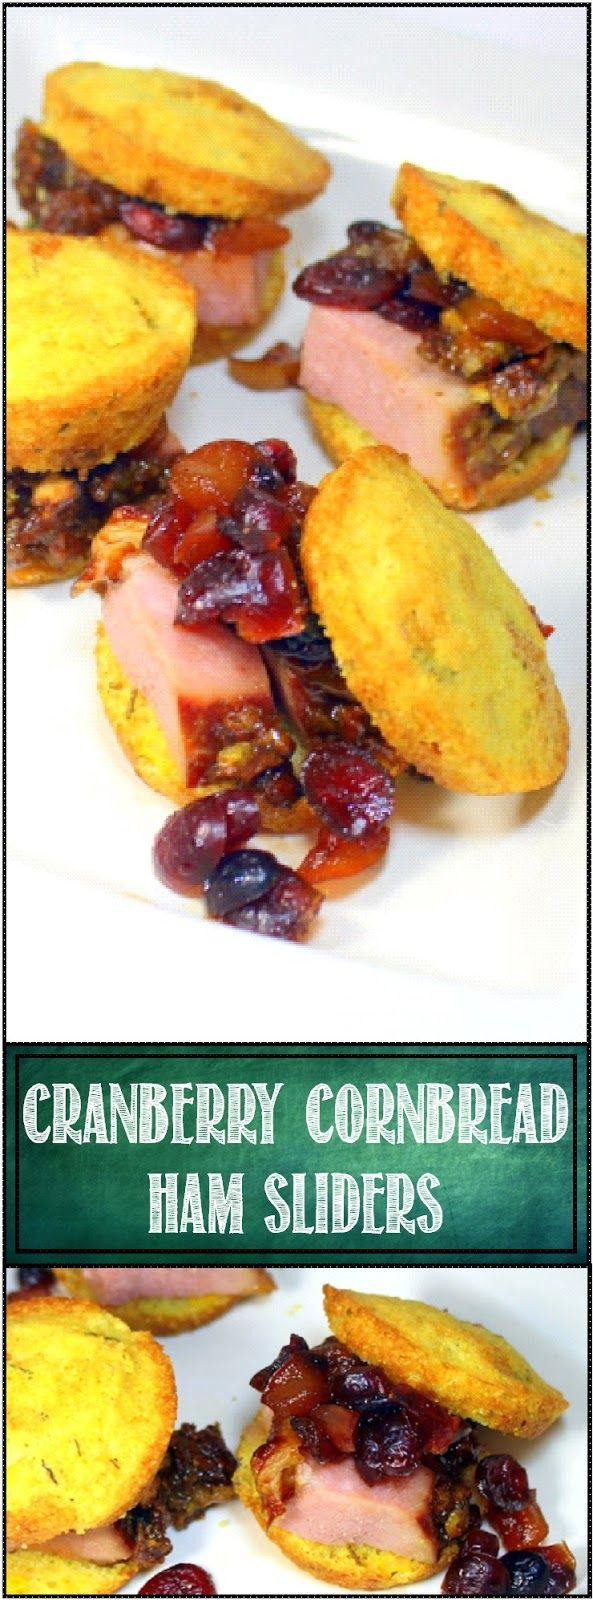 Cranberry Cornbread Ham Sliders (Holiday Leftovers) - 52 Holiday Appetizer Ideas... These are the BOMB of Holiday Leftovers. A little Cranberry Chutney (recipe included), A little Holiday Pistachio Ham (Recipe included) all on a WONDERFUL Best I ever had Cornbread Rosemary Muffin (Recipe included)... This is the stuff of miracles by the light of a refrigerator bulb... ENJOY!